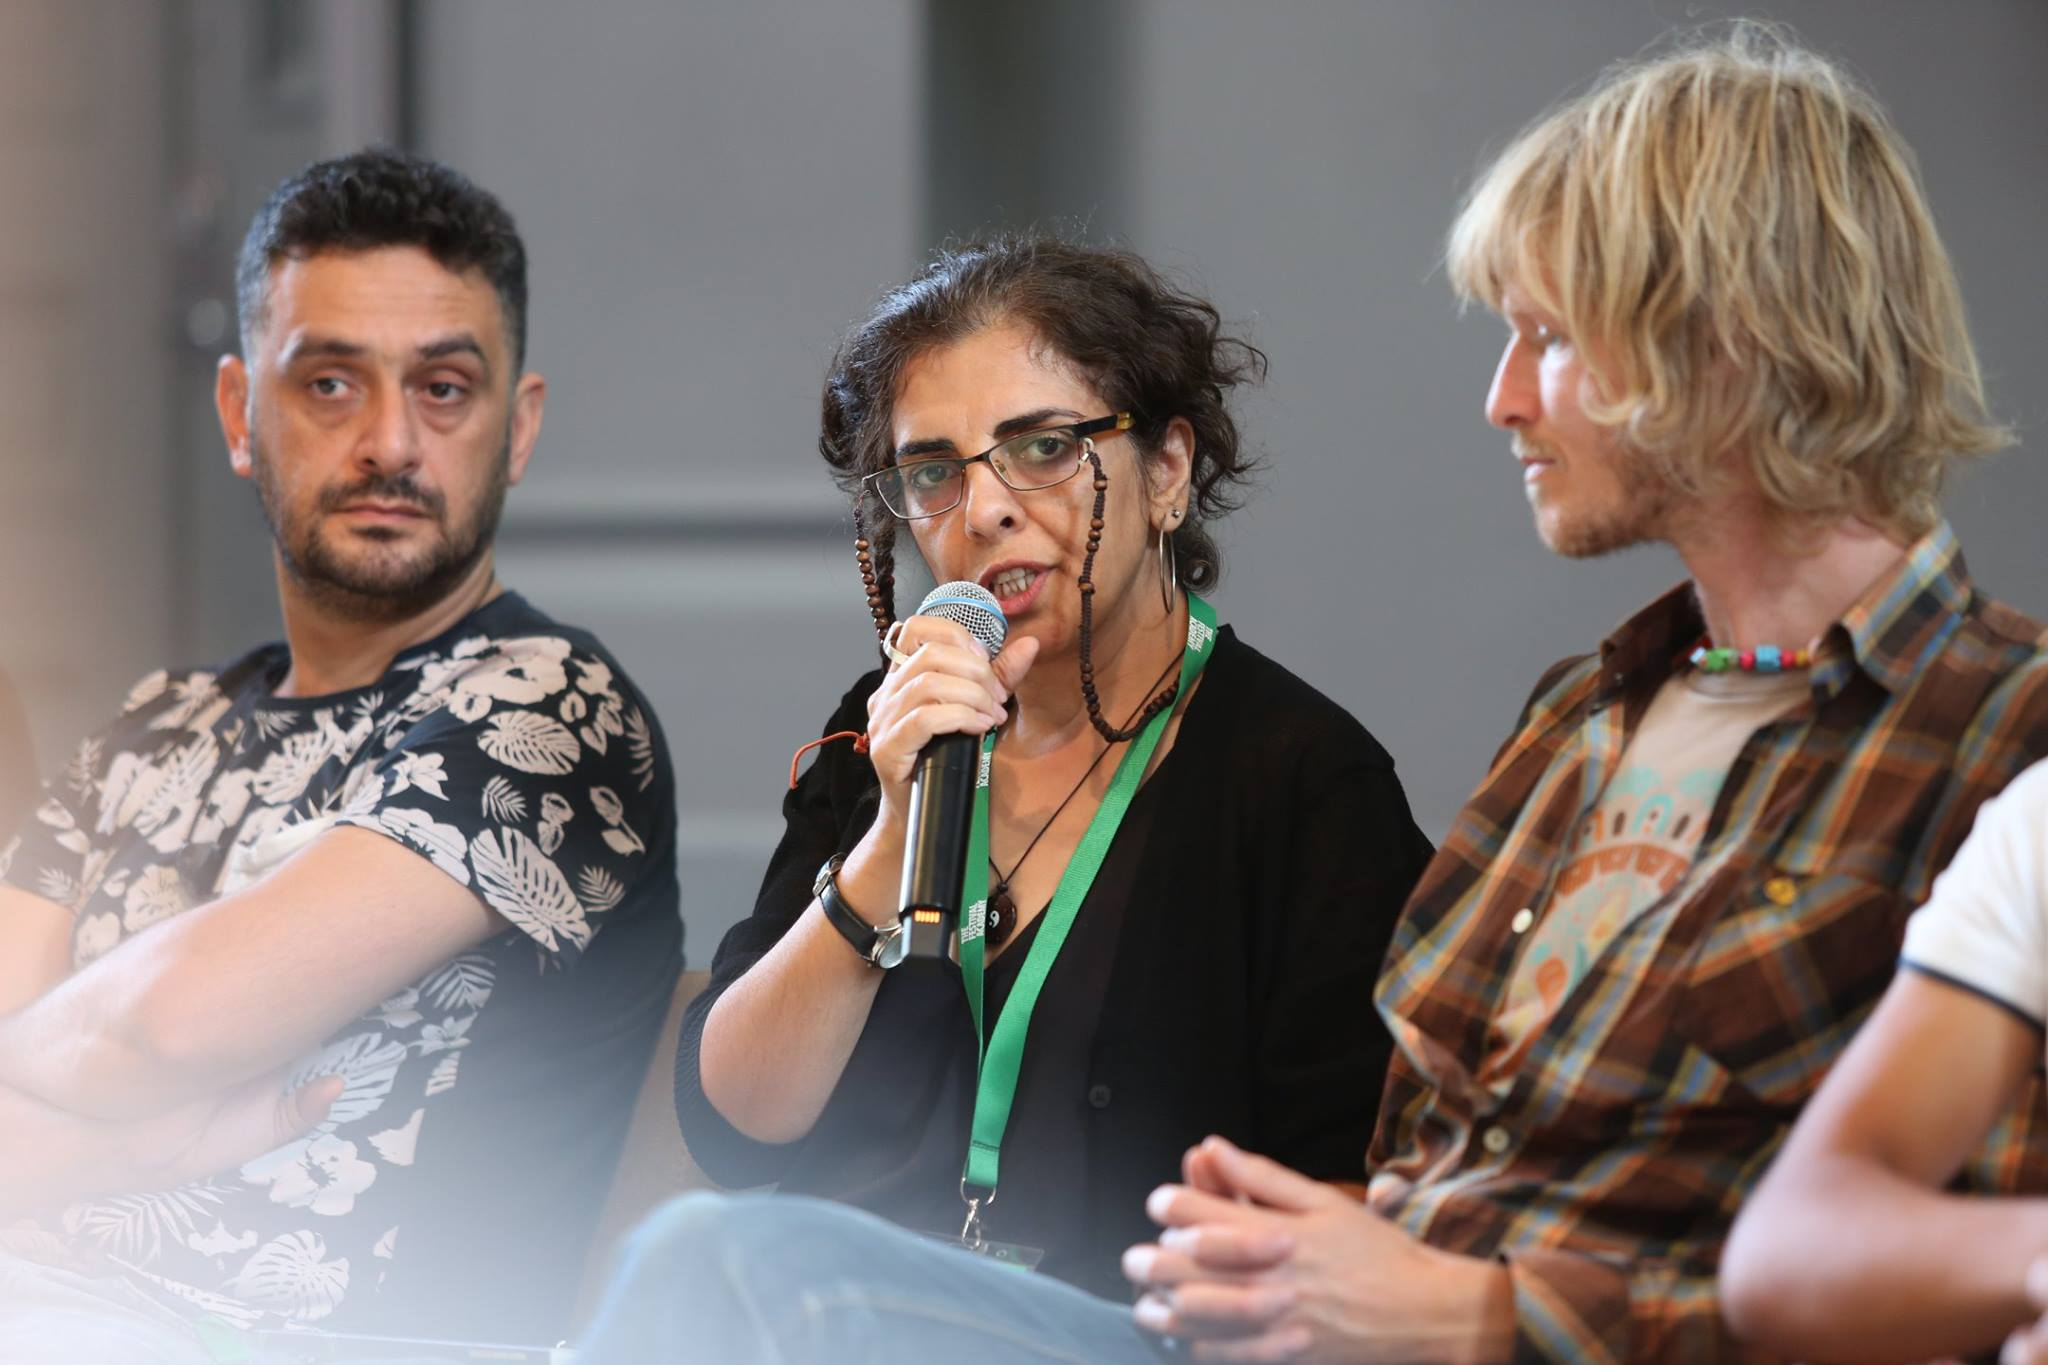 Ashraf Atrachi, Iraqi artist and art critic, ICORN artist in residence in Stockholm 2014-2016, and Parvin Ardalan, ICORN writer in residence in Malmö 202010-2012. Speakers and participants at the The Festival Academy August 2018 in Gothenburg. Photo.